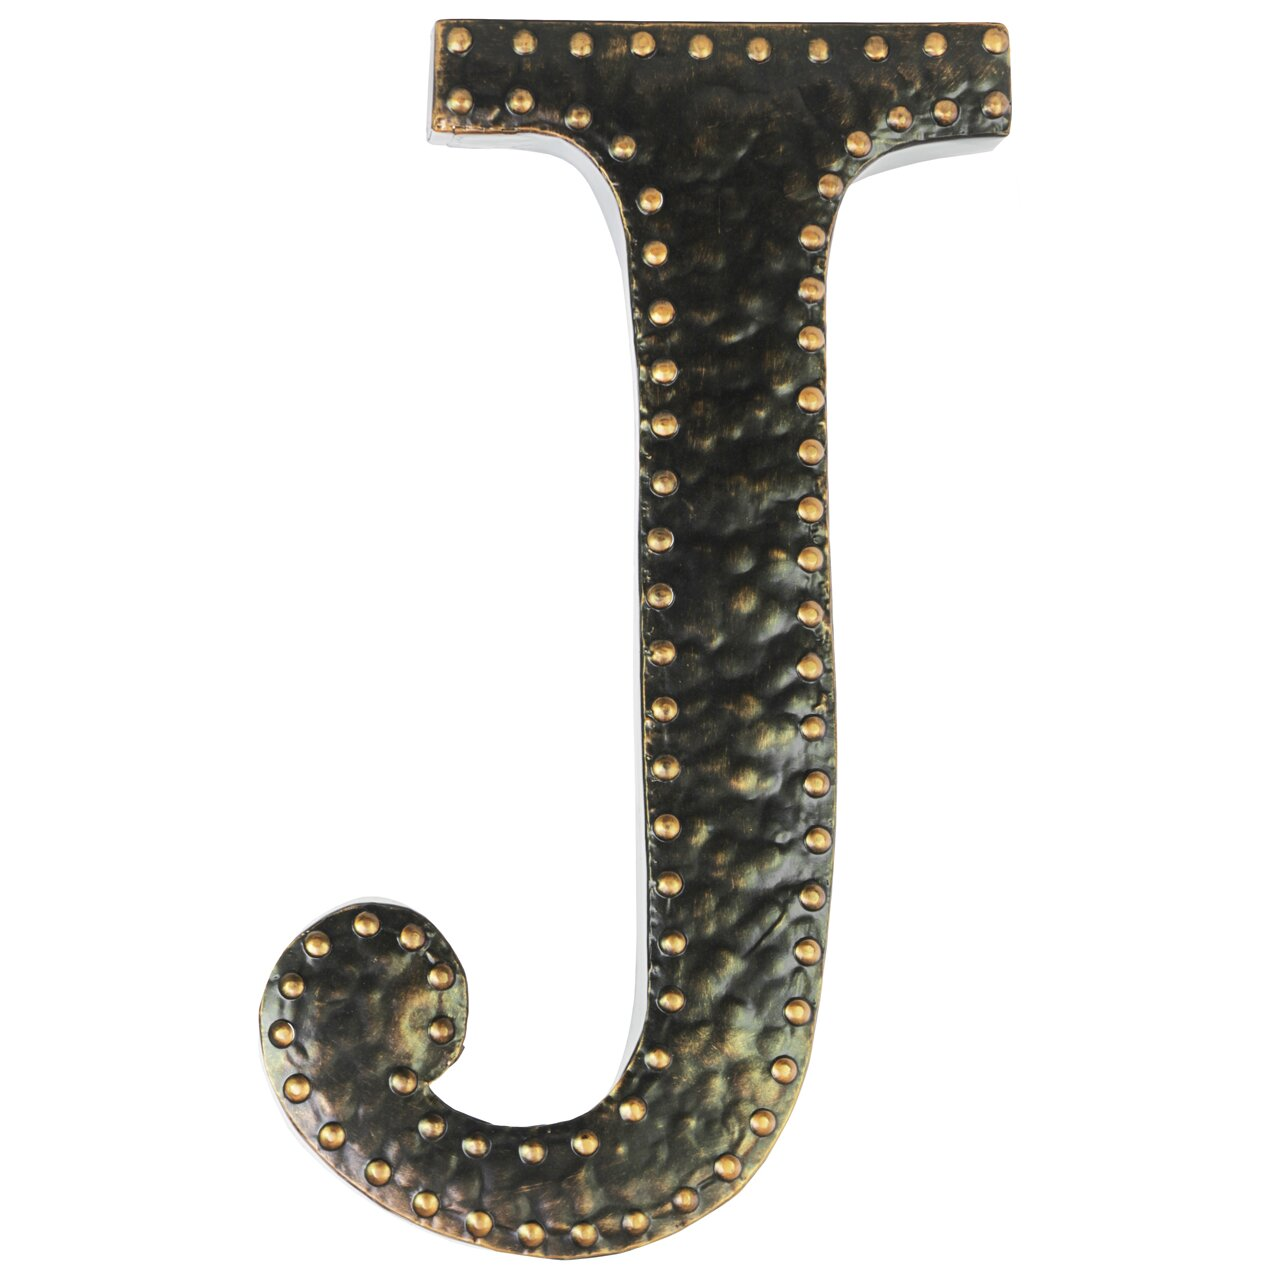 Metal Wall Letters Home Decor: Urban Trends Metal Letter Wall Décor & Reviews